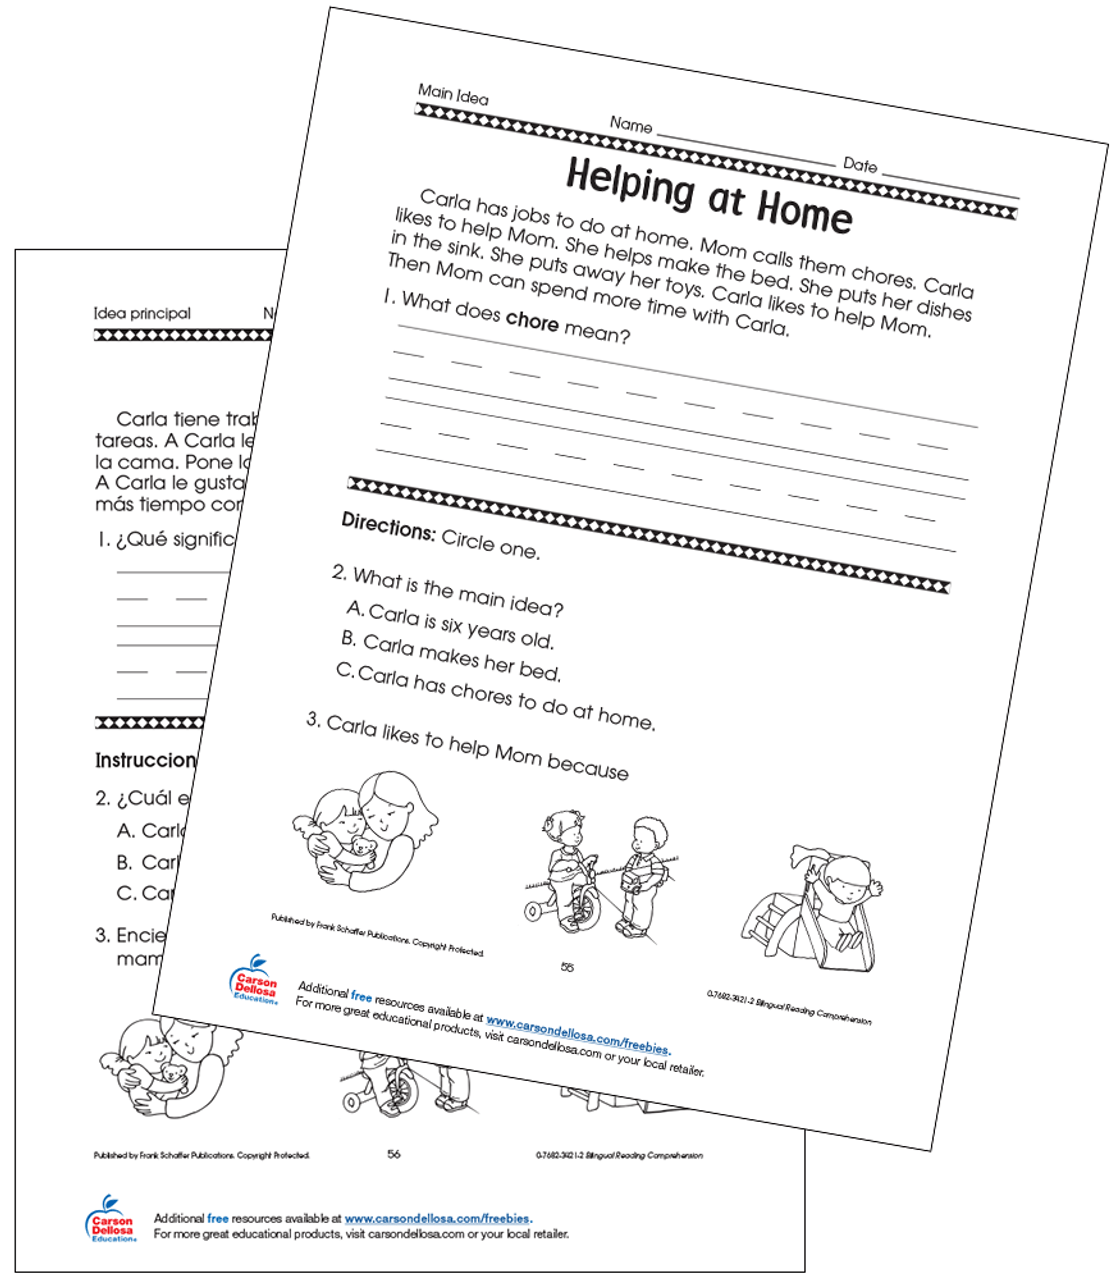 Helping at Home Grade 1 Bilingual Free Printable   Carson Dellosa [ 1280 x 1120 Pixel ]